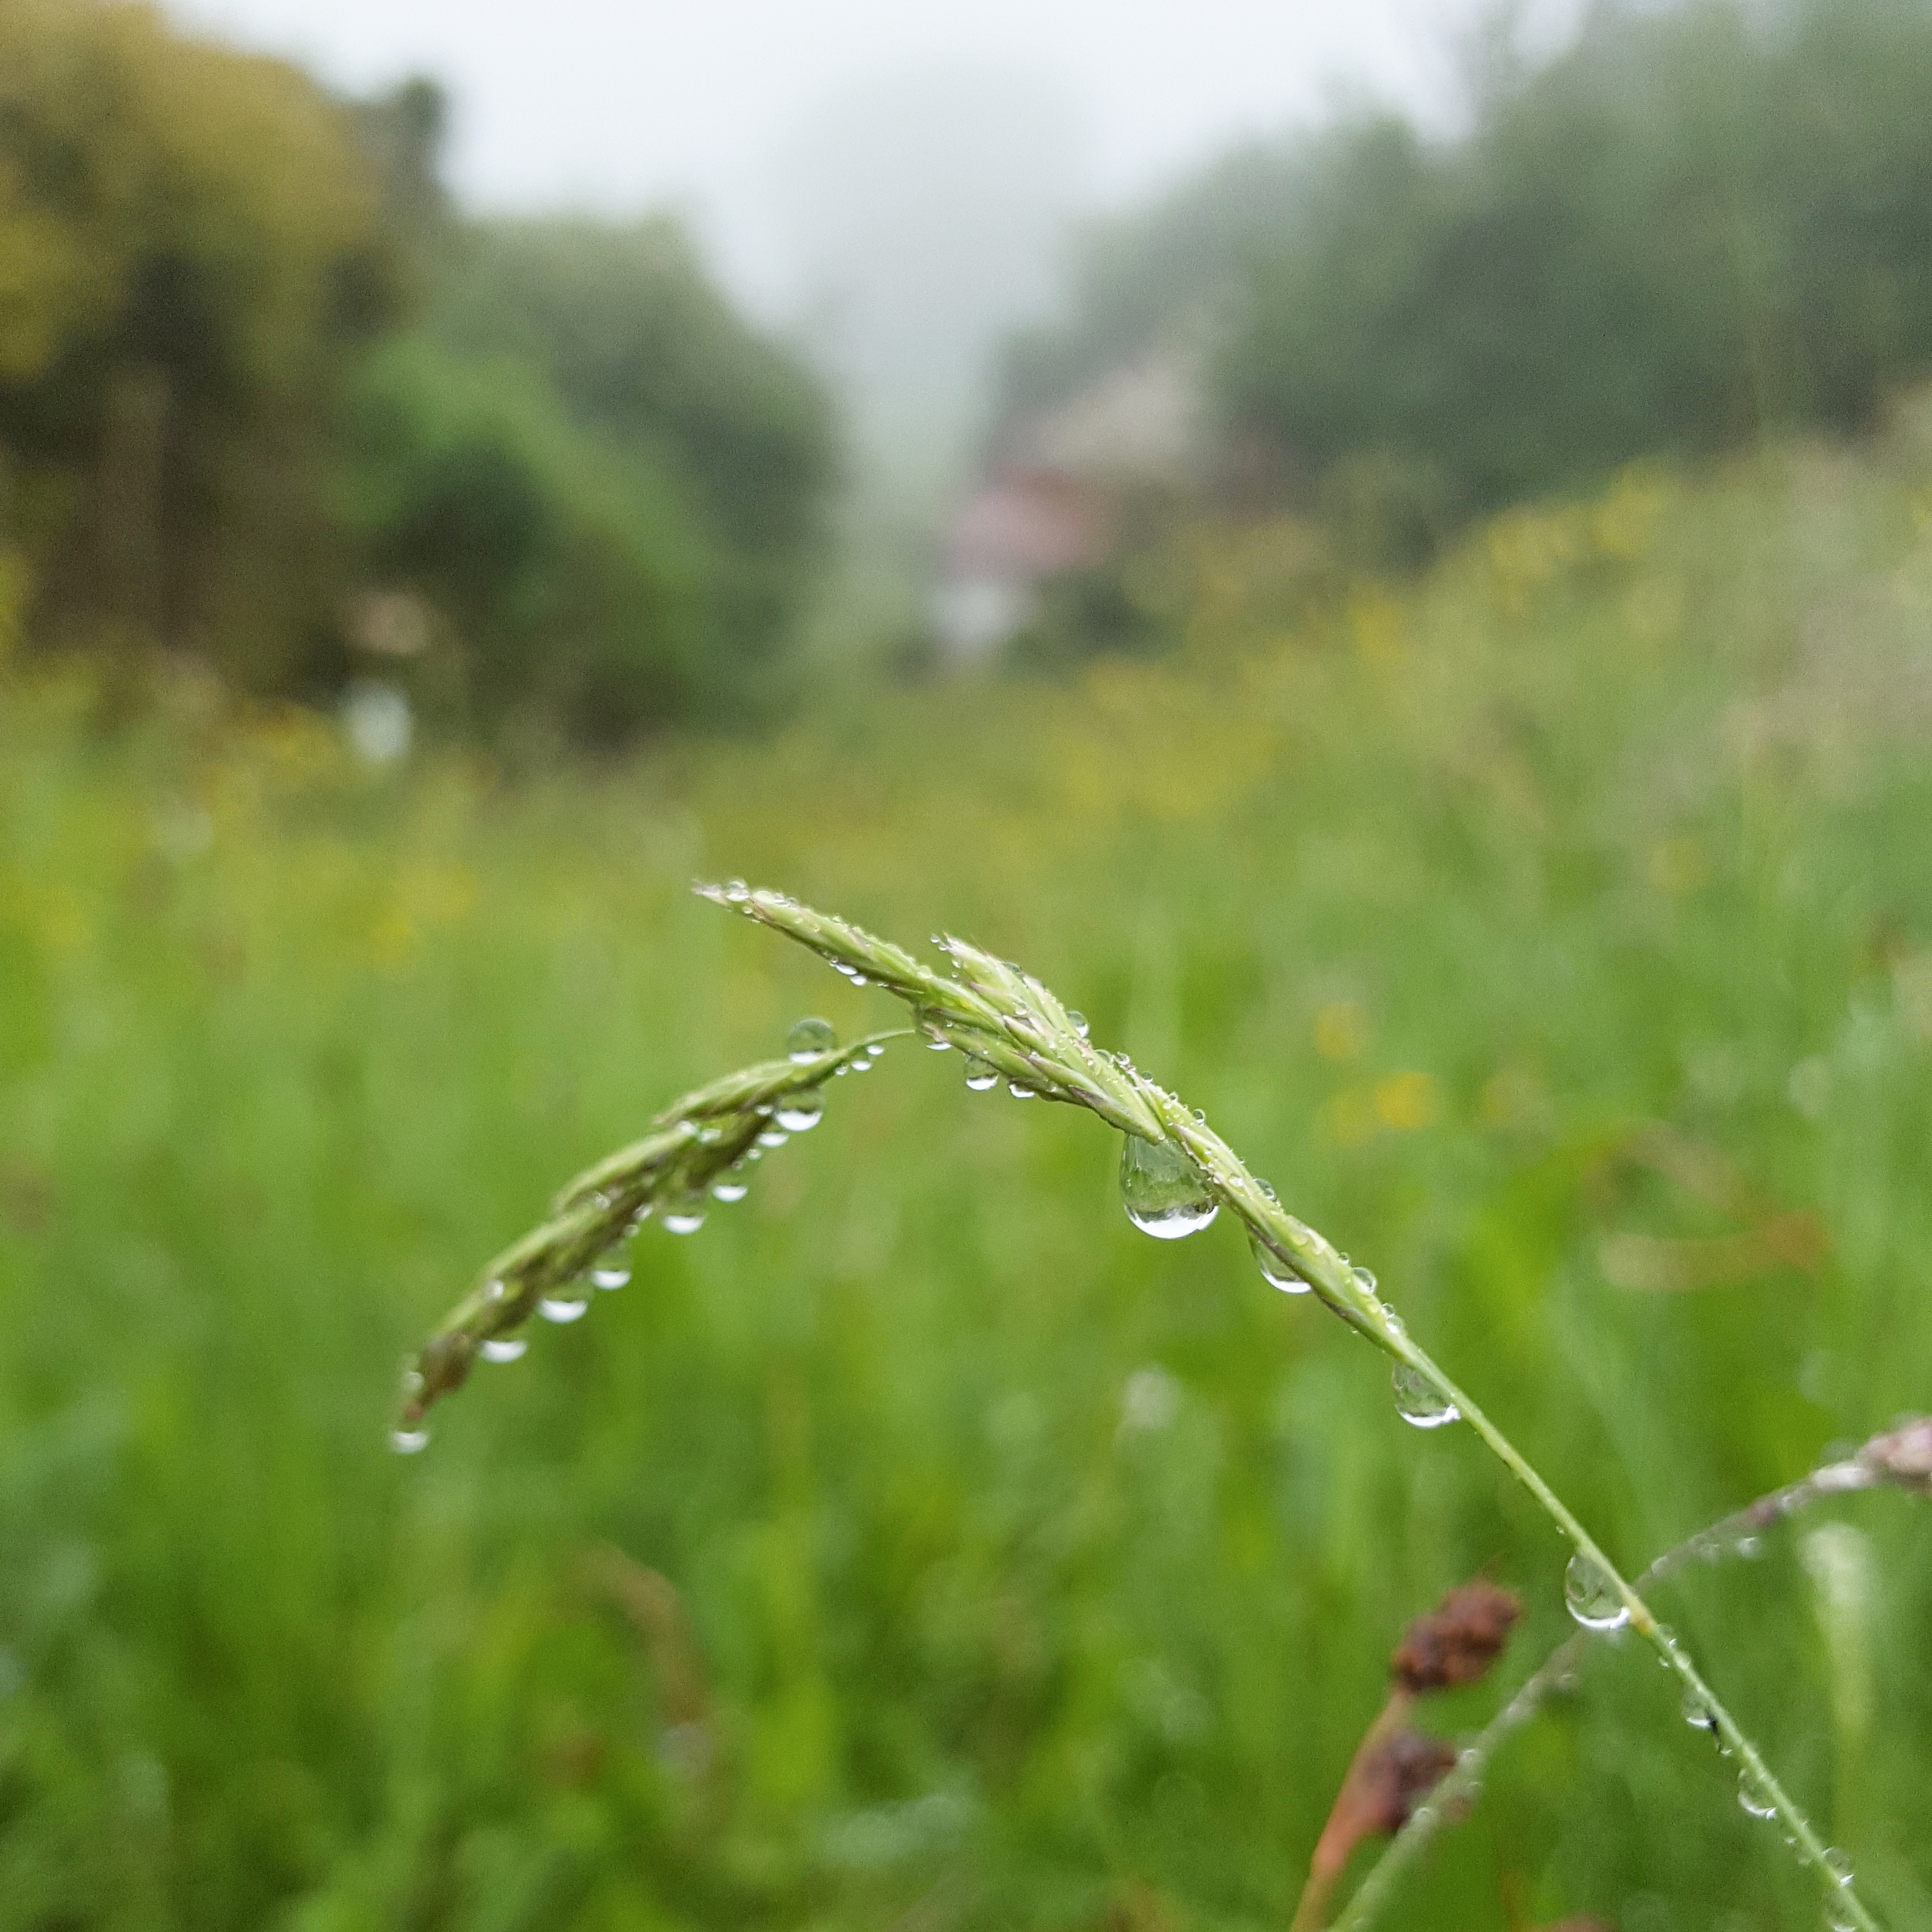 Coping-with-Alzheimer's-raindrops-The-Last-Krystallos